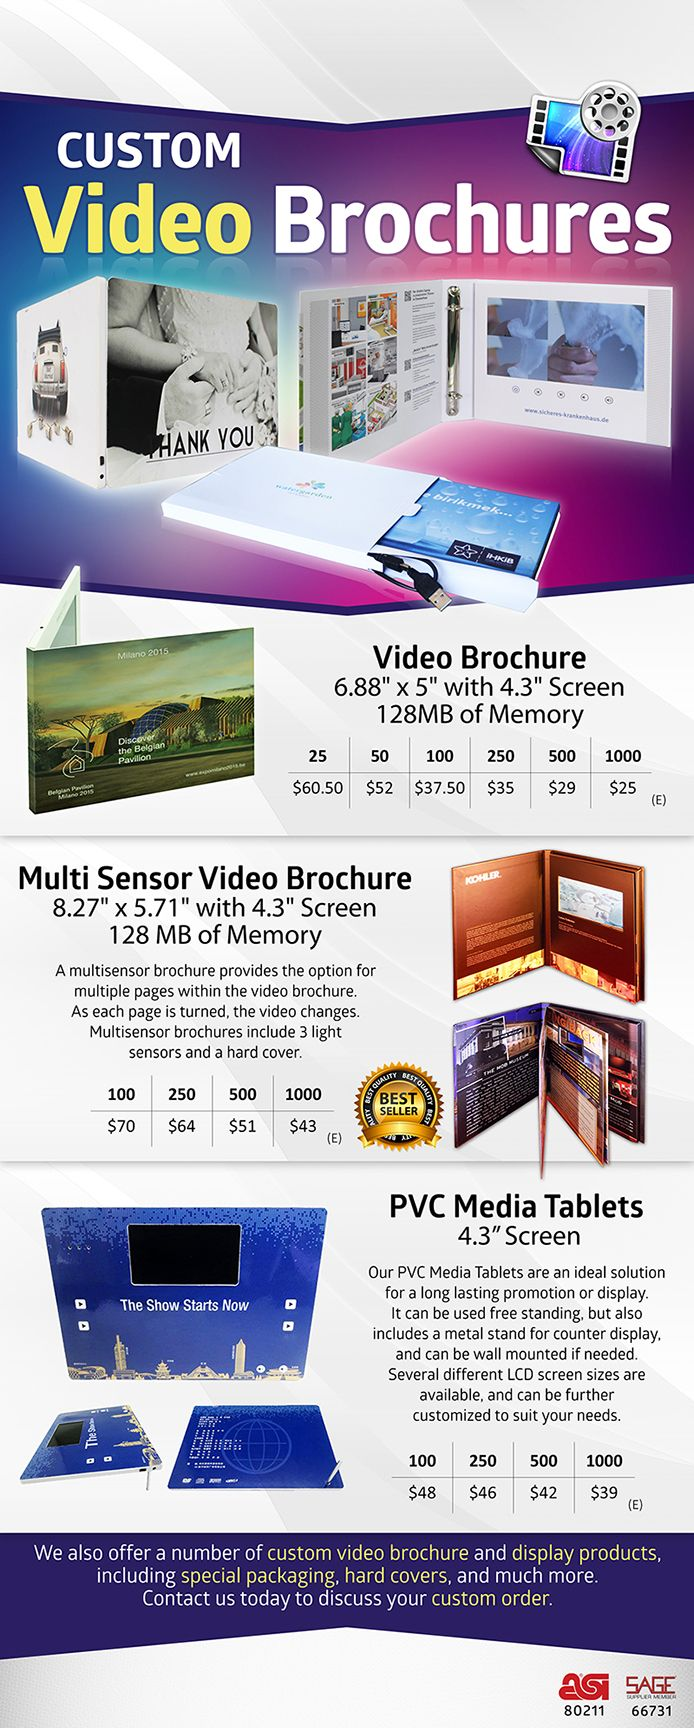 Custom Video Products From Video Brochure Line  Promotional